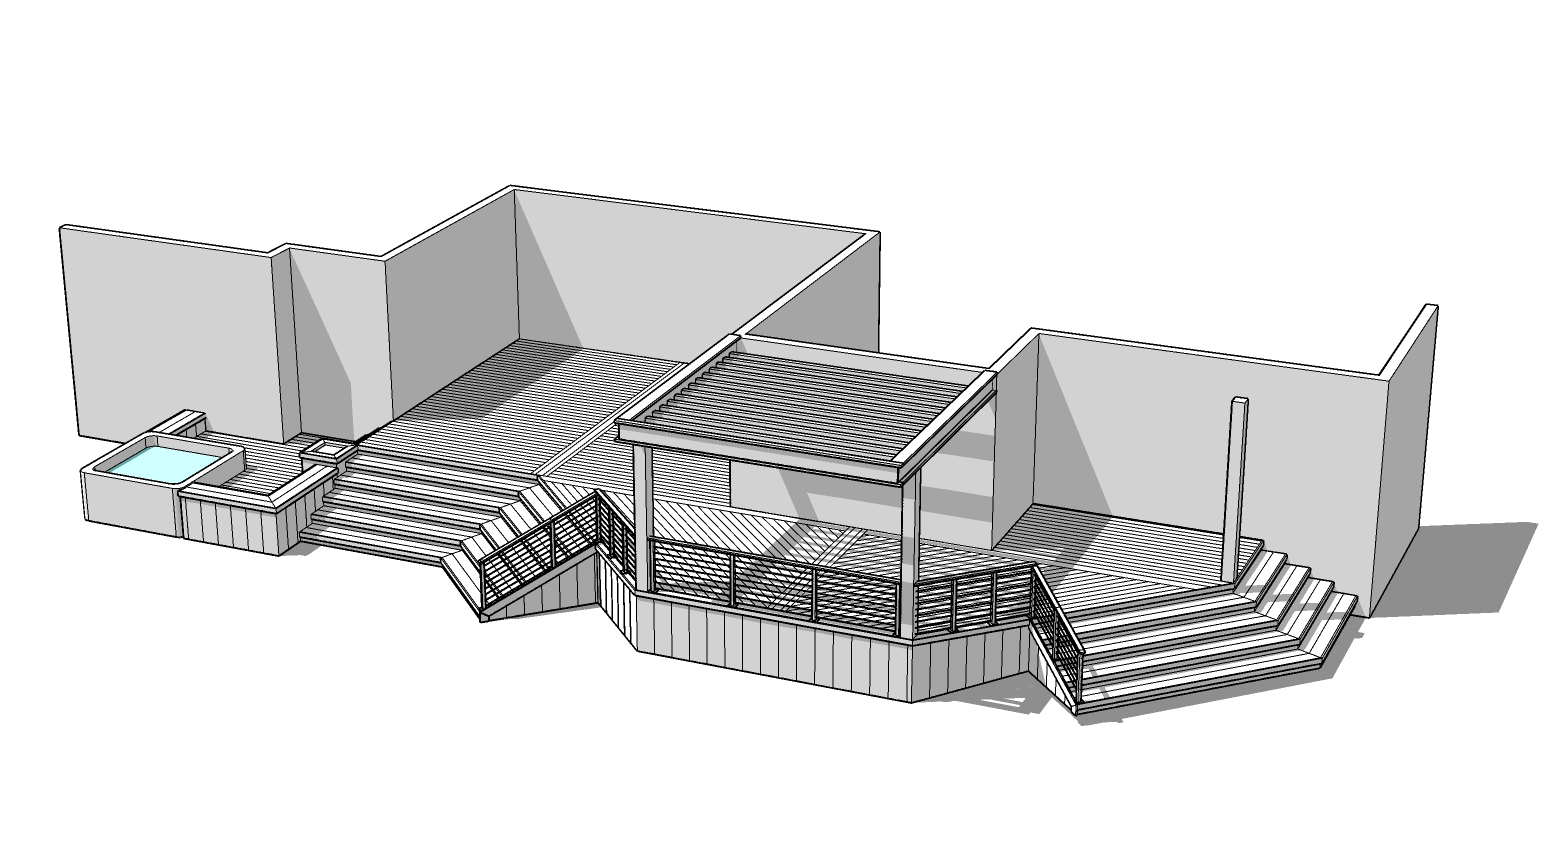 Design - Every deck begins with a basic design plan which is critical to the success of any project. Whether you know in advance exactly what you want or whether you're overwhelmed by the idea of creating a deck space alone, we're here to help.